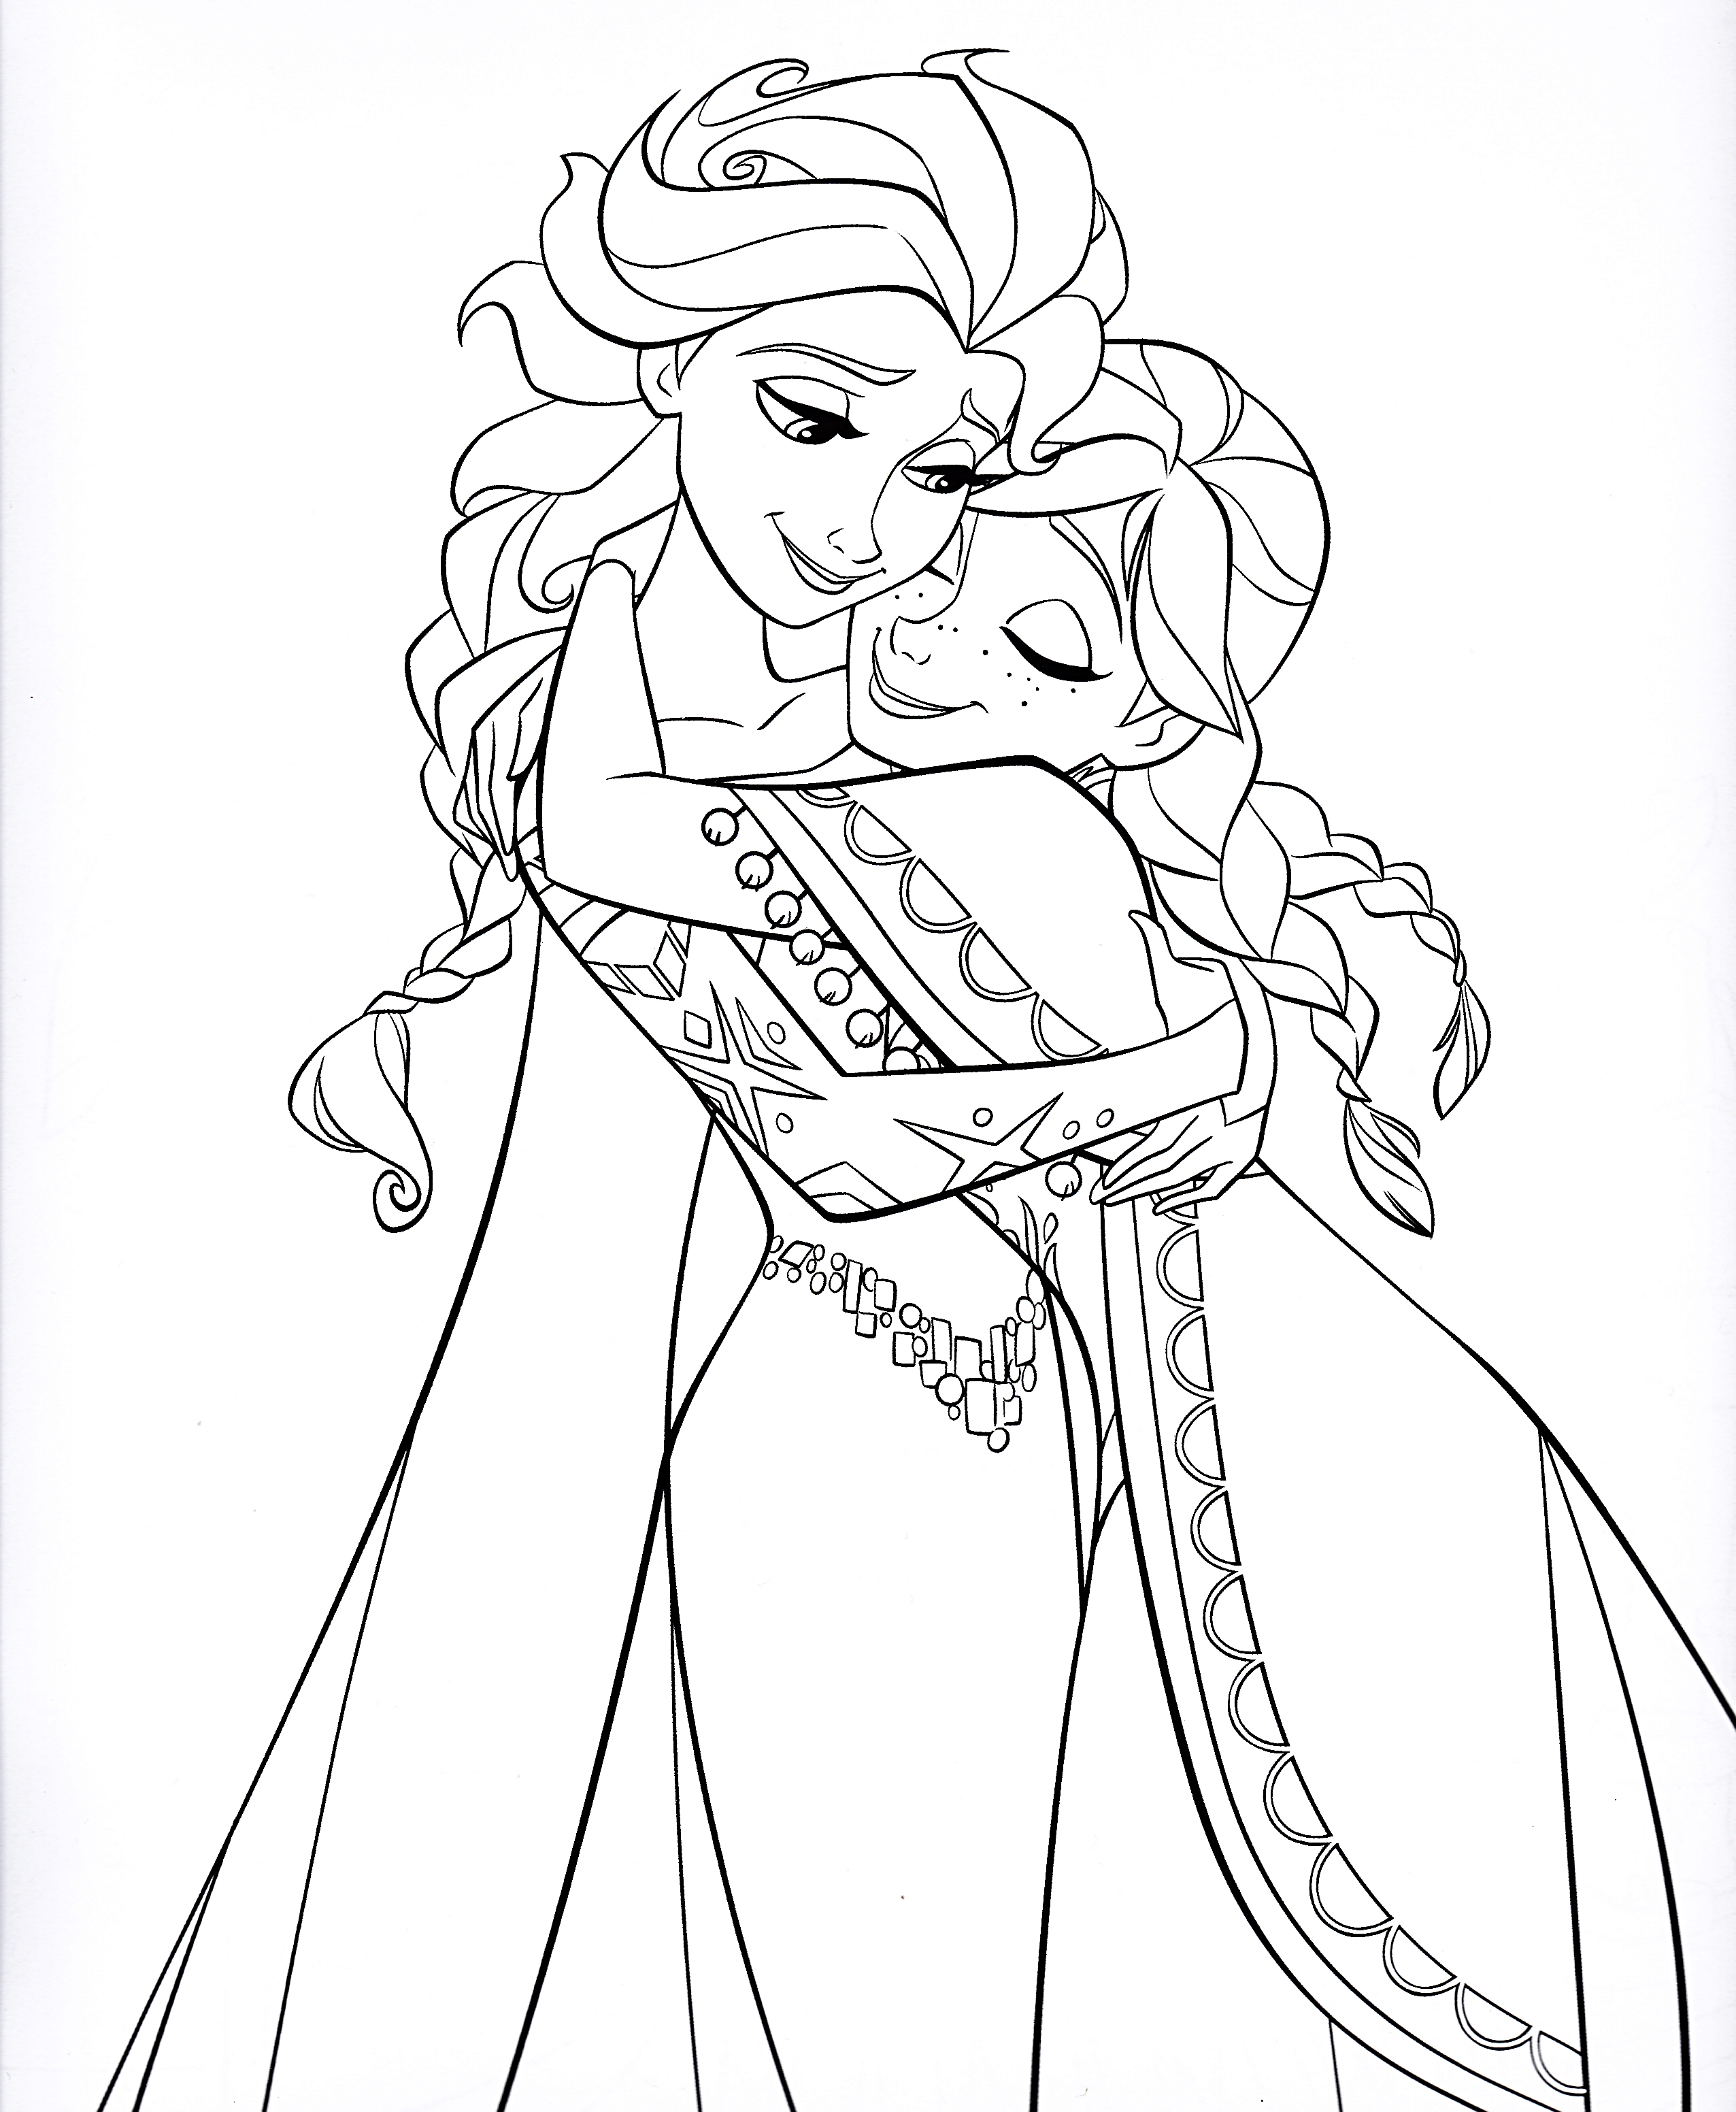 Coloring Pages Wonderful Photo Of Disney Character With Splendi ... | 3104x2552